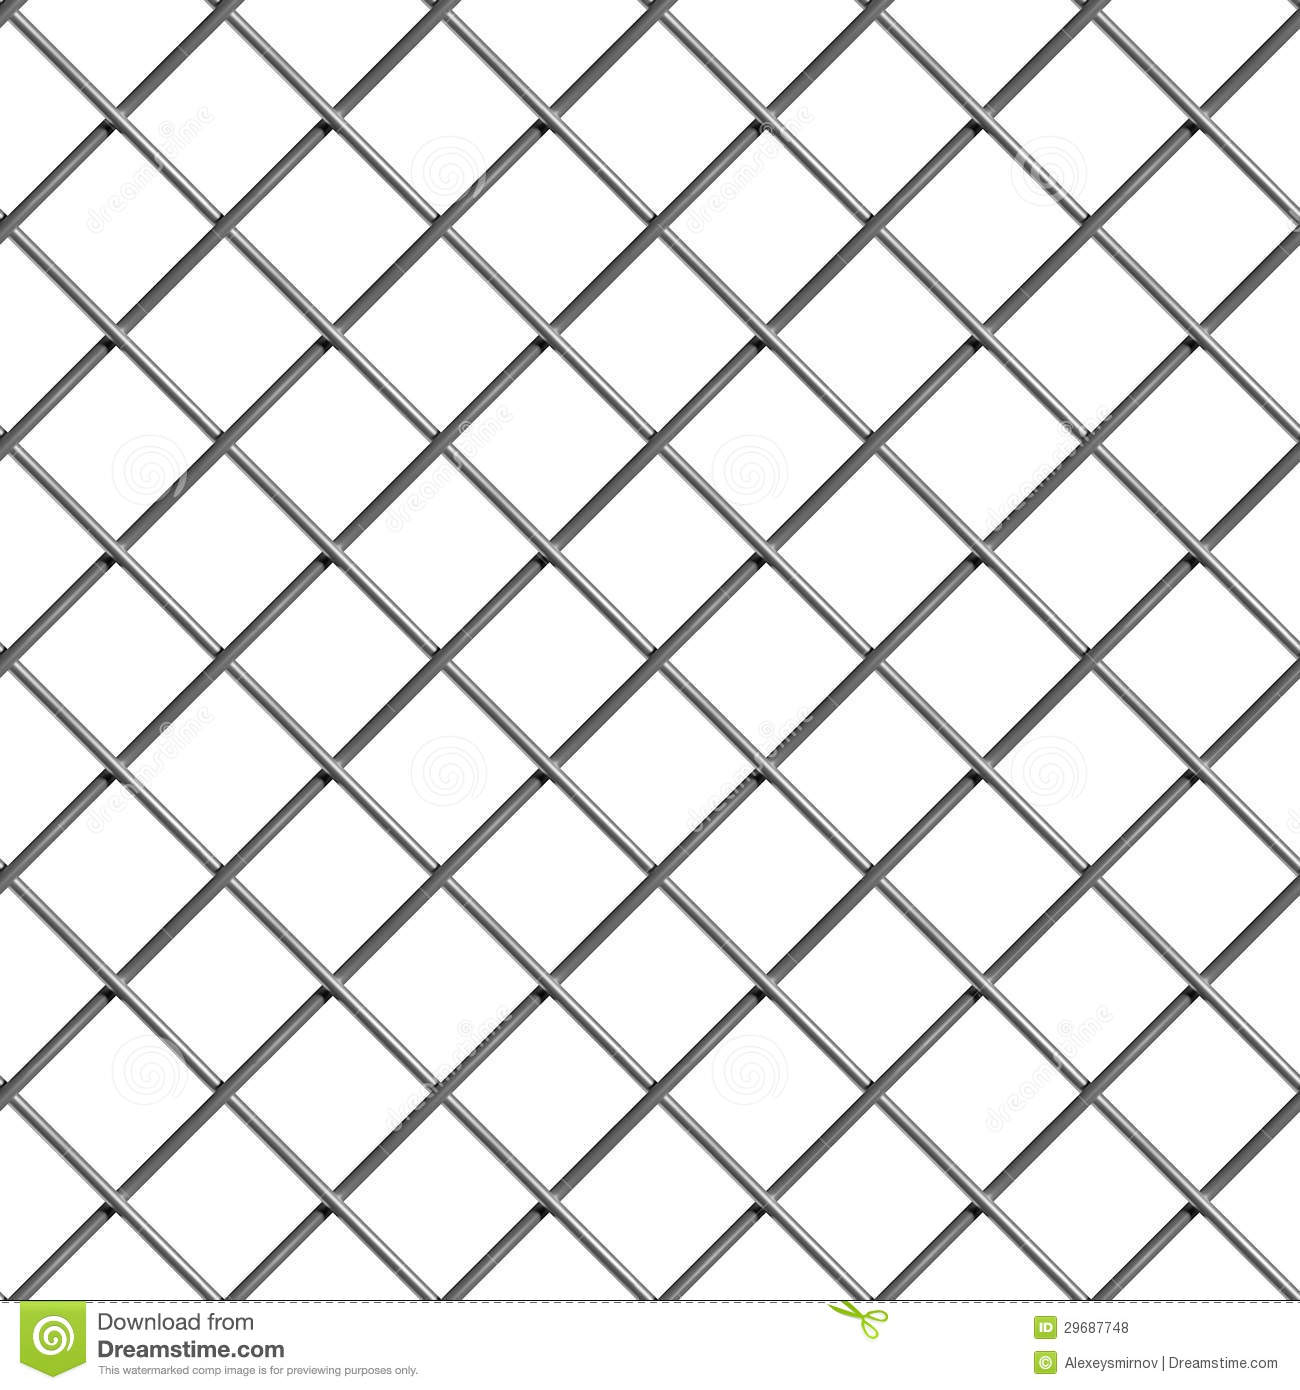 Braided Wire Steel Net Seamless Industrial Background Stock.